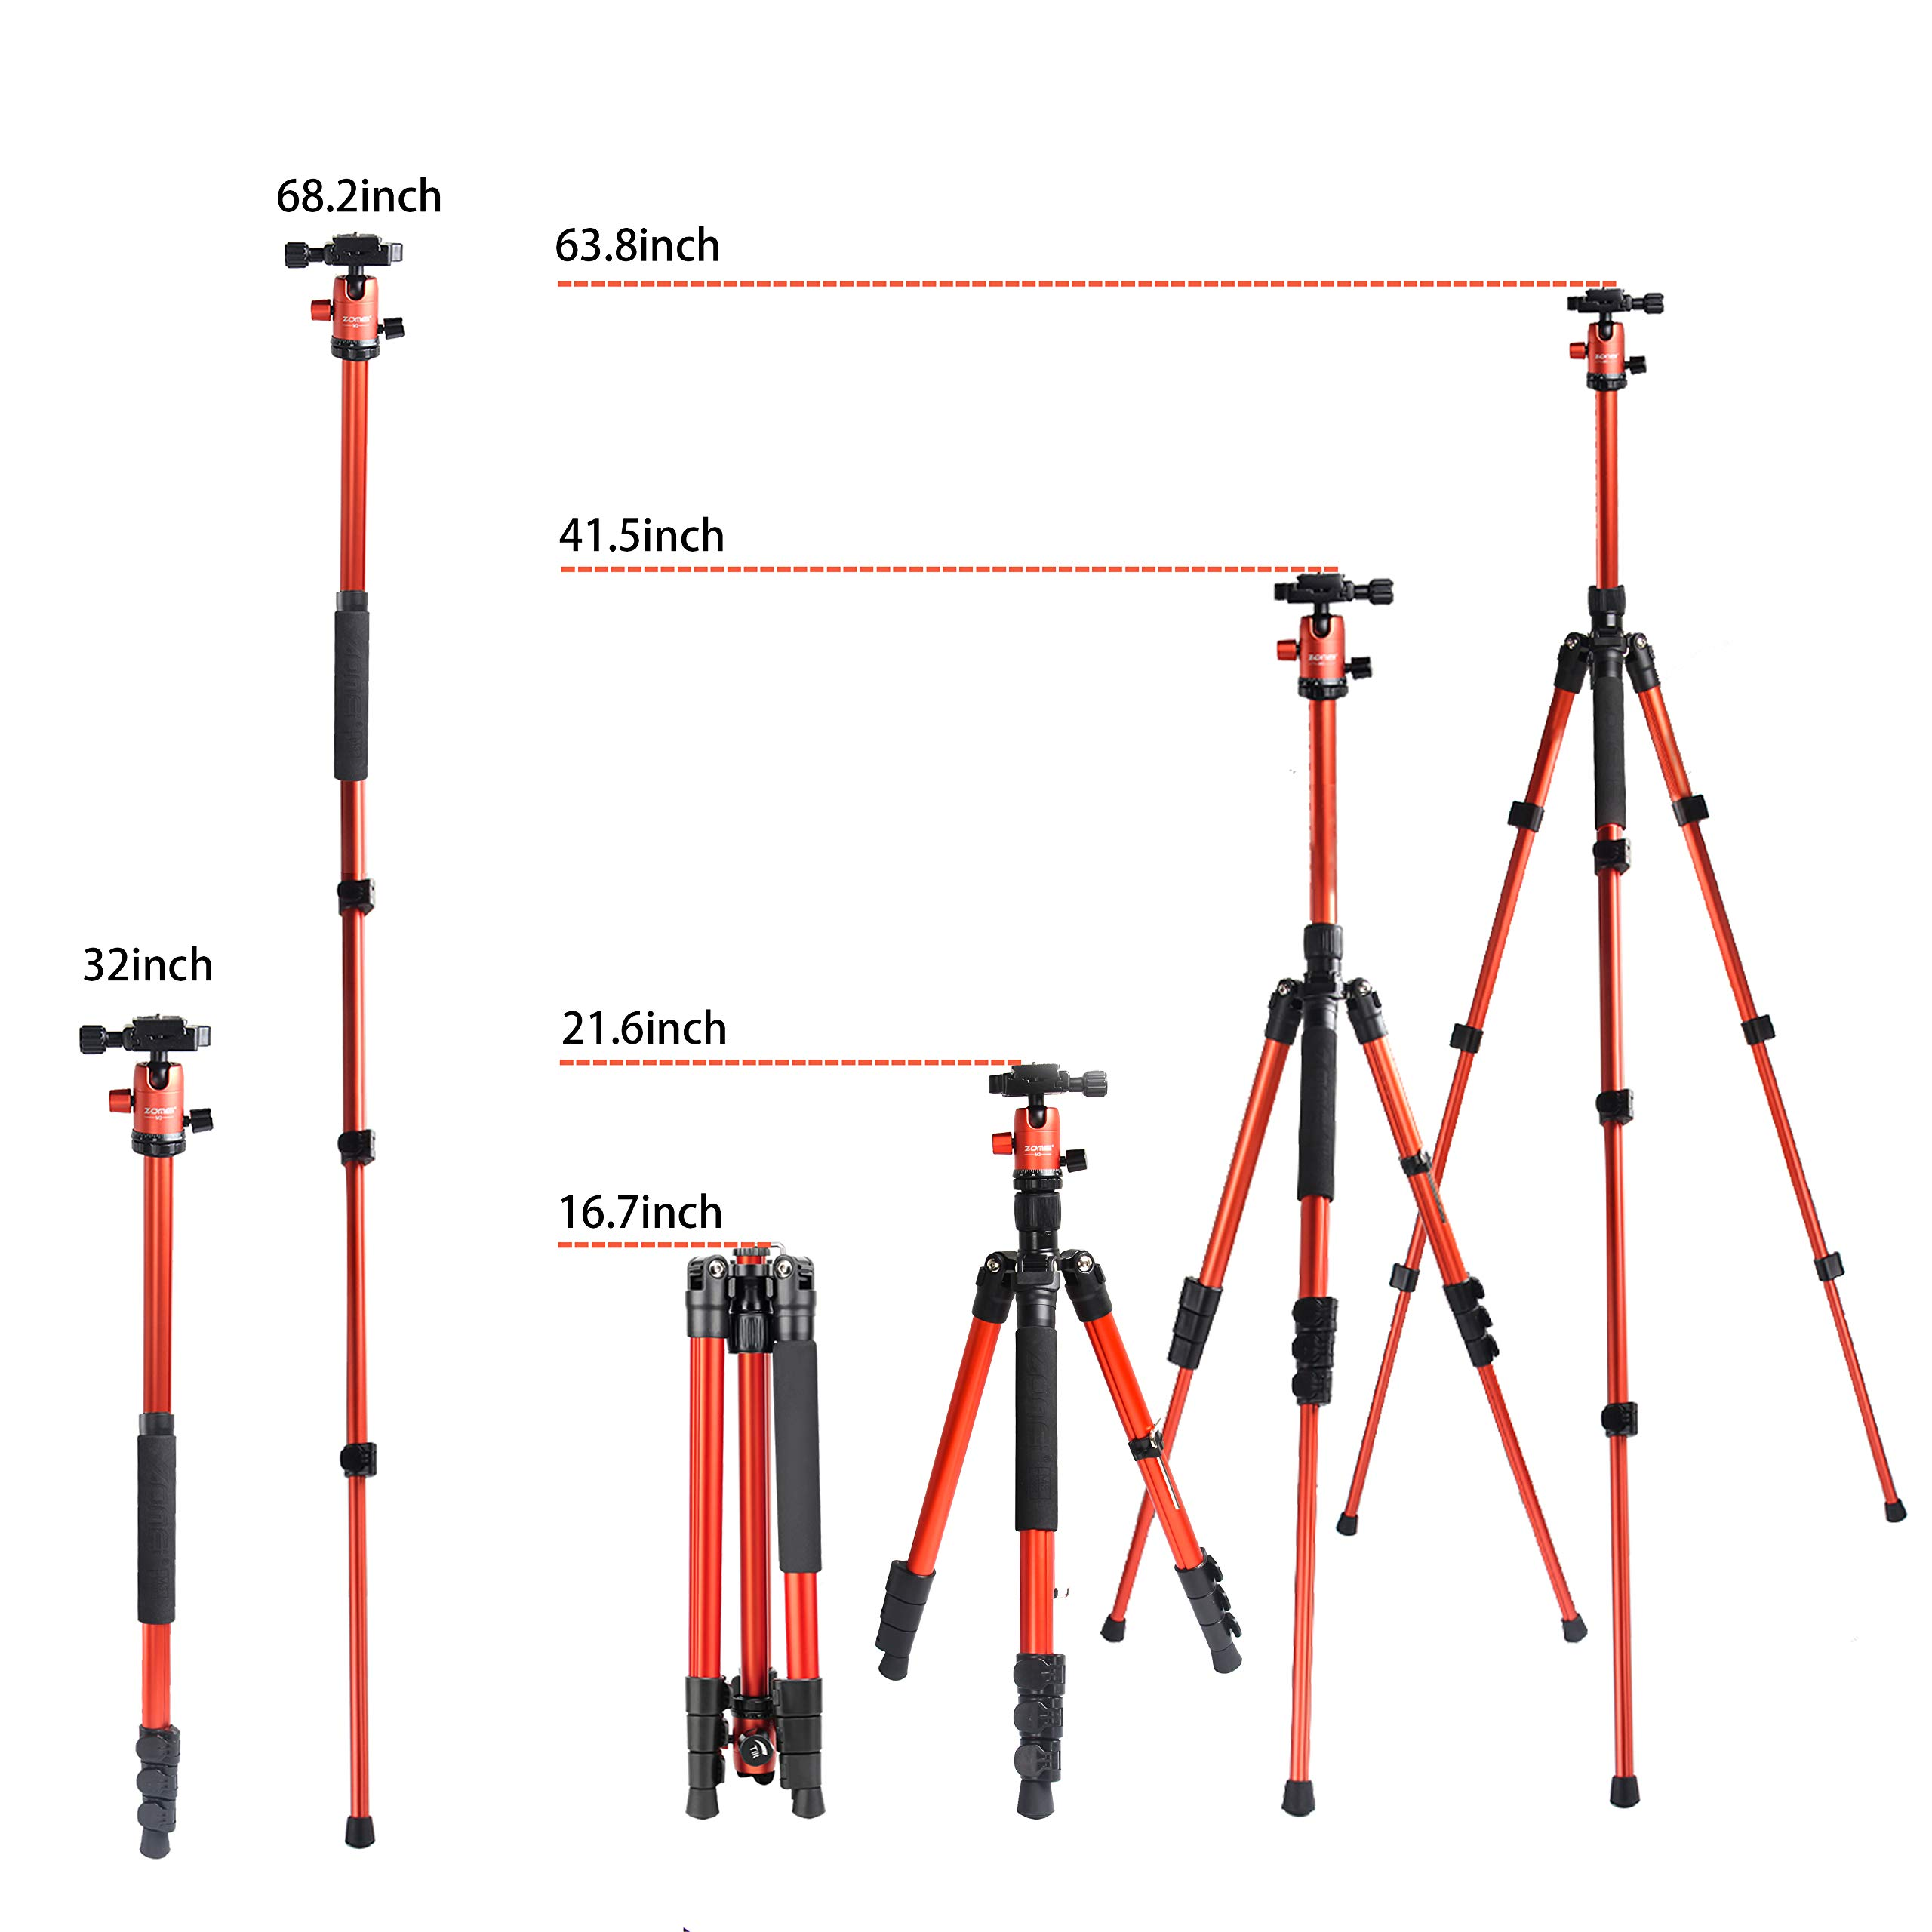 Zomei M3 Travel Camera Aluminum Tripod Lightweight Professional with 360 Degree Ball Head,1/4\